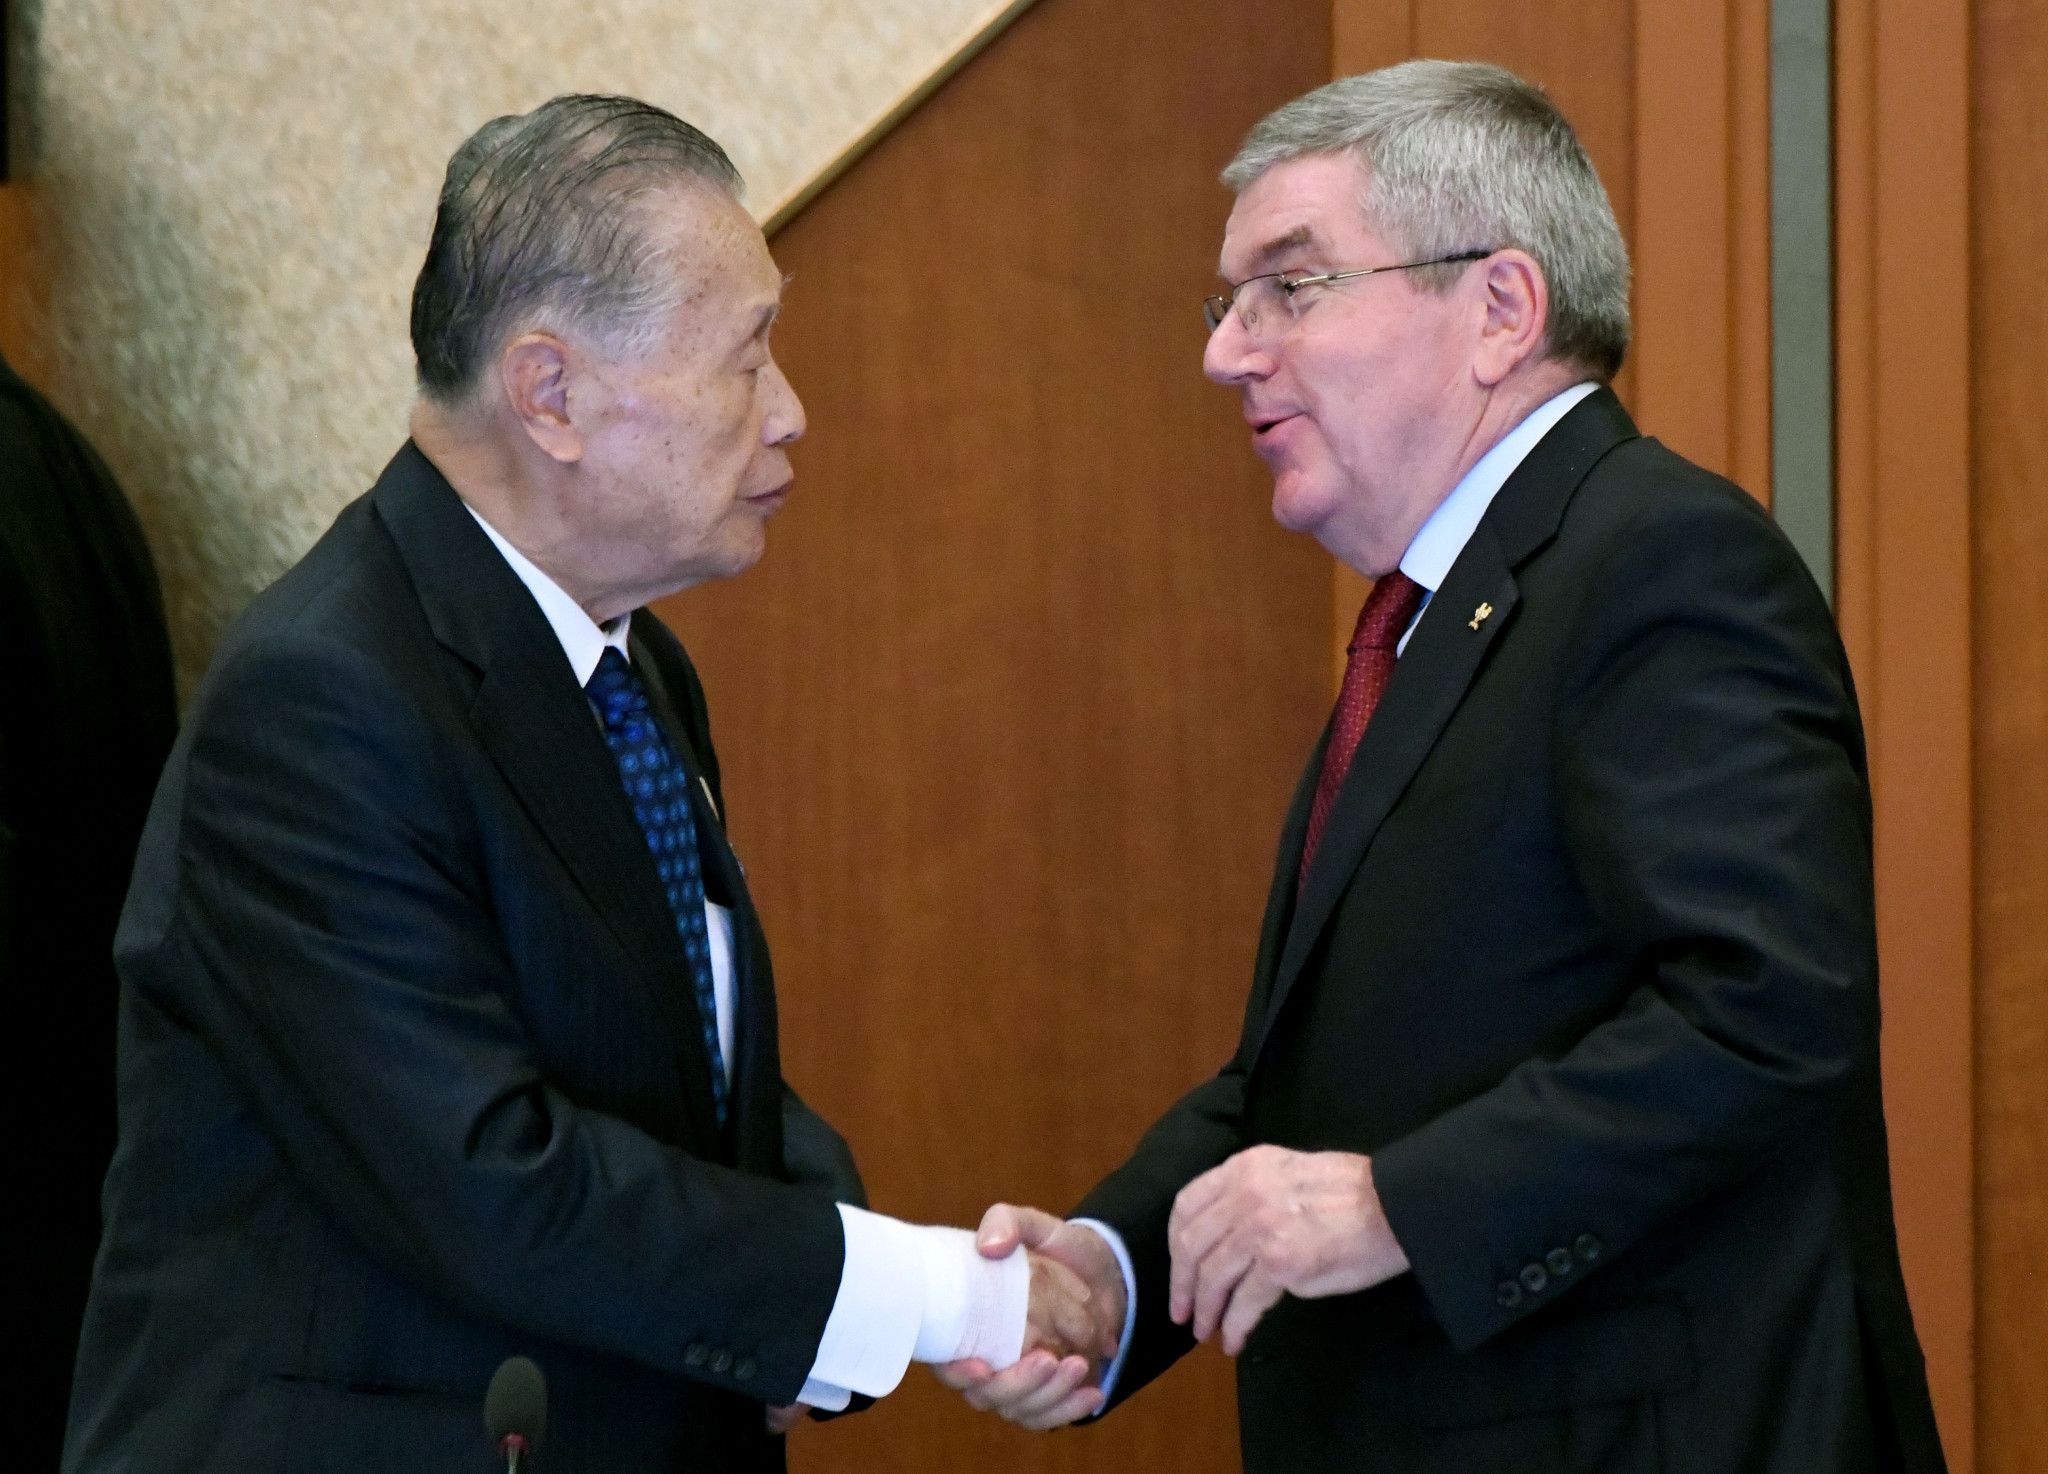 Tokyo 2020 President Yoshirō Mori has confirmed Thomas Bach's impending visit to Tokyo ©Getty Images